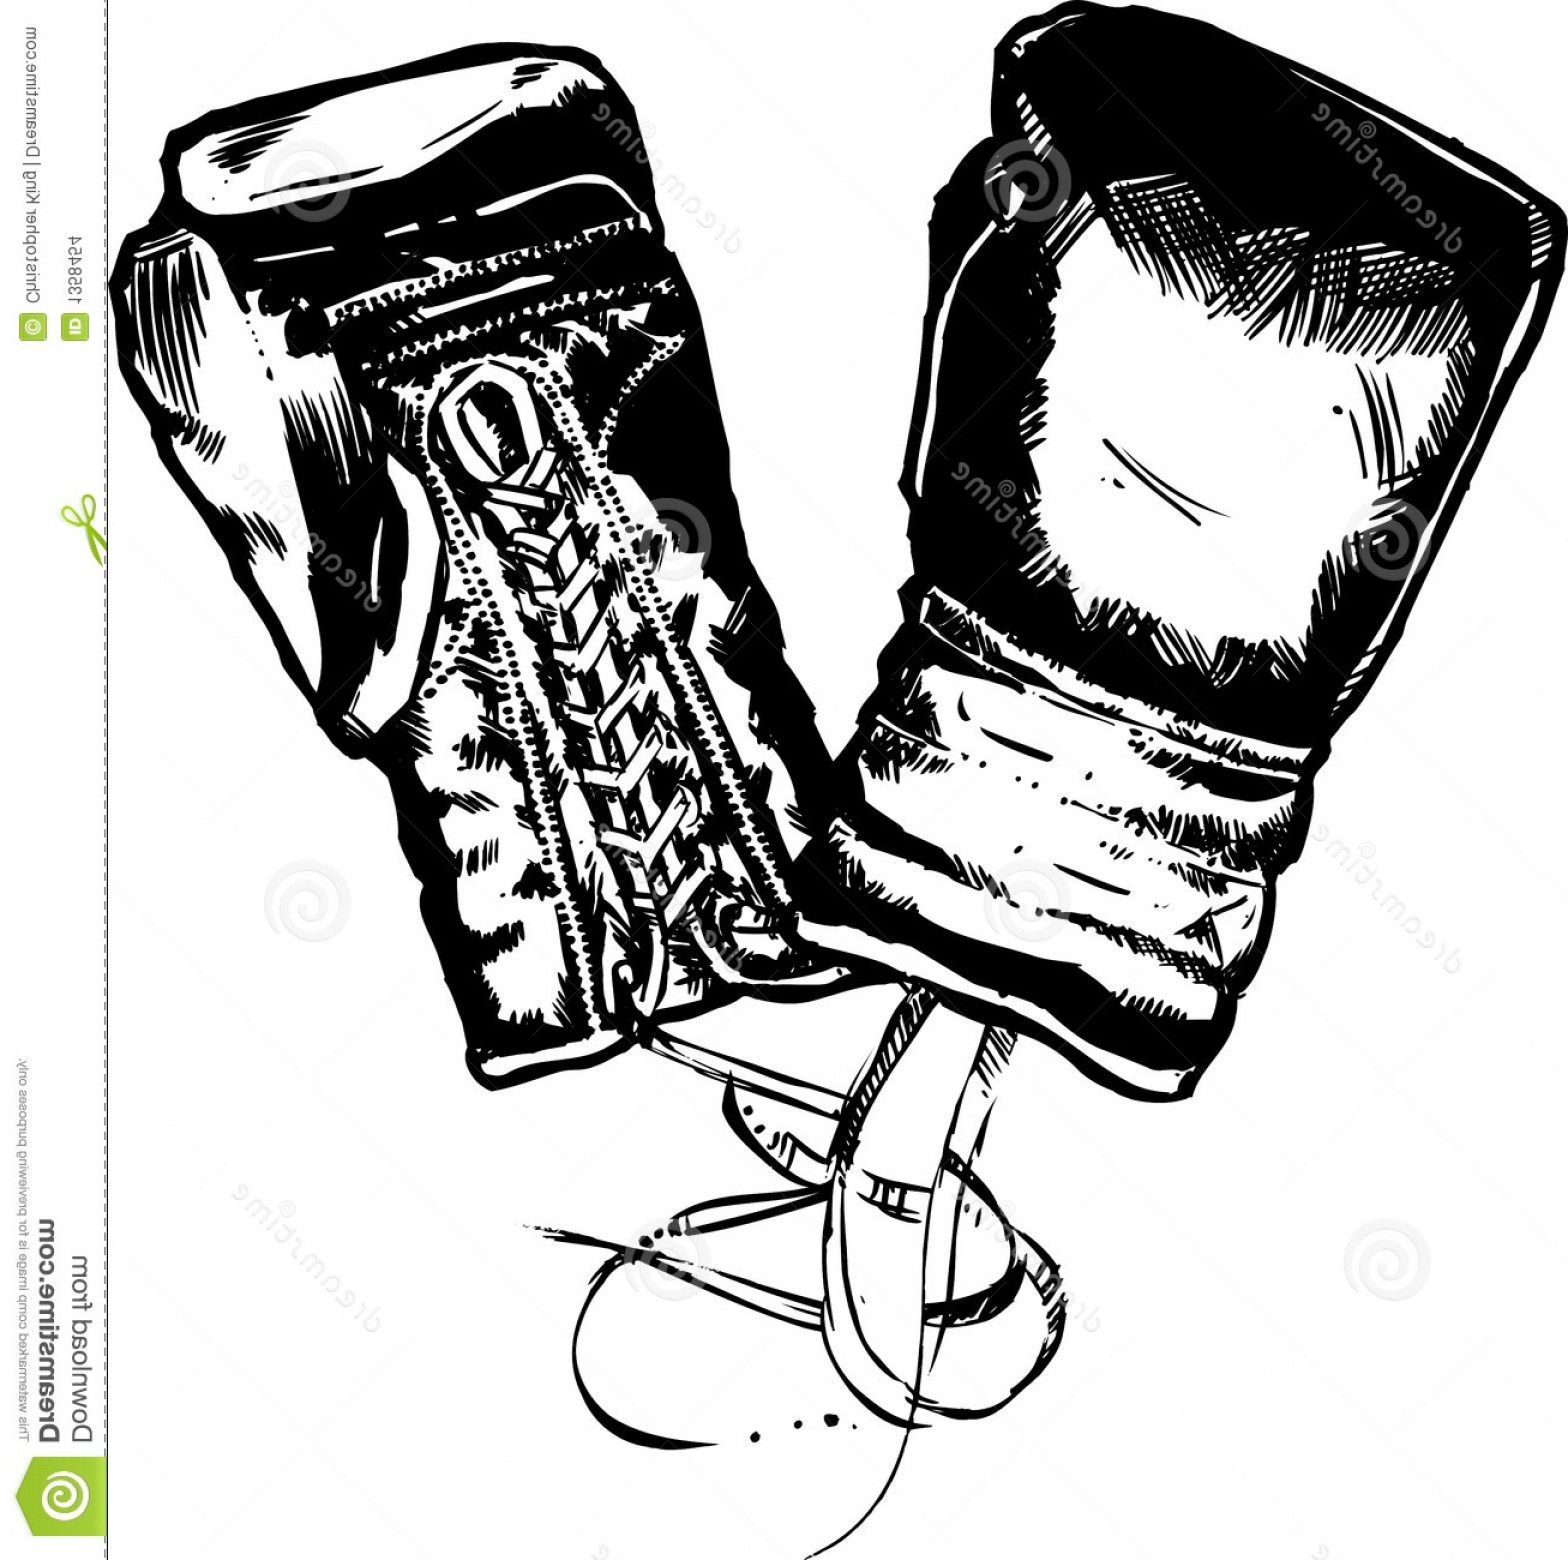 Pictures Of Boxing Gloves Vector Art: Stock Images Boxing Gloves Vector Illustration Image